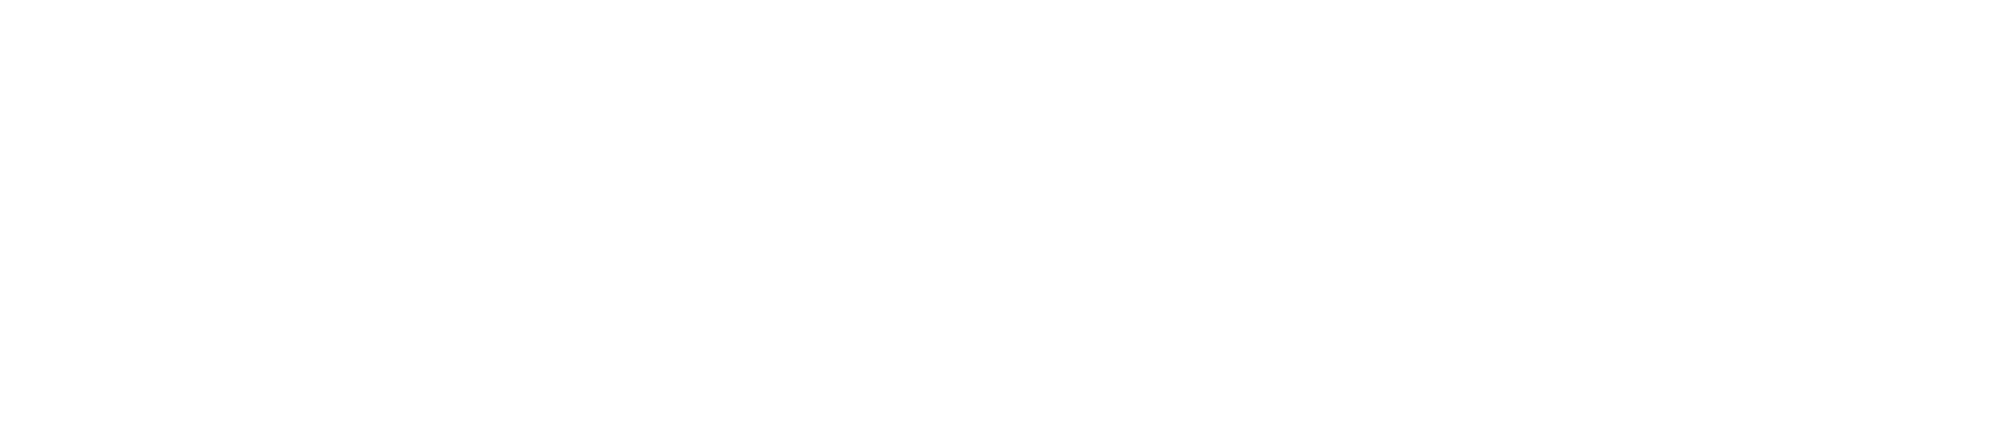 Number of restaurants large type